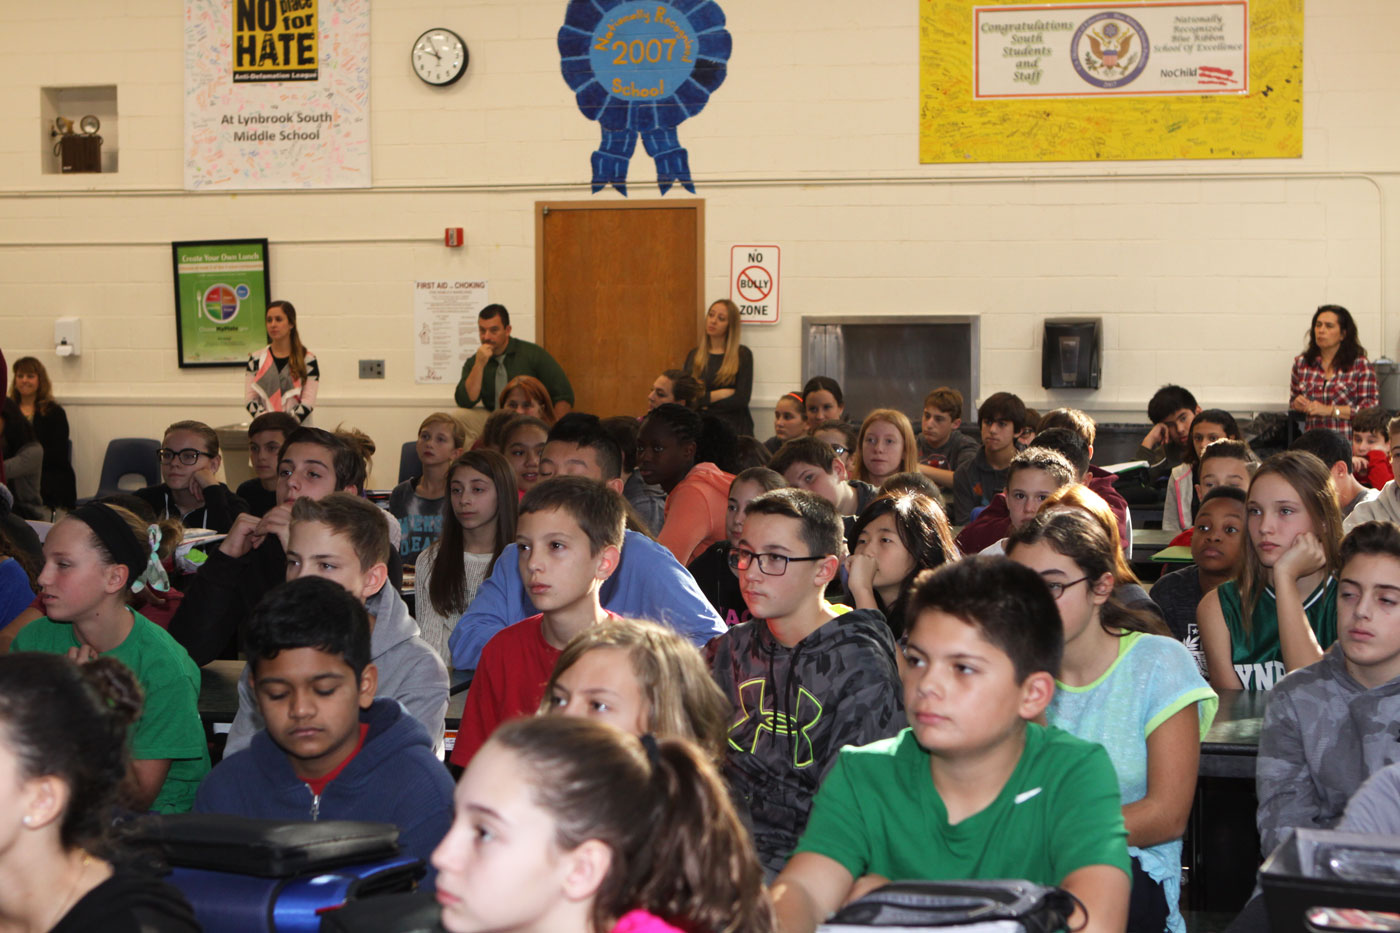 Ray Speaks To The Lynbrook South Middle School Little Saint Nick Foundation